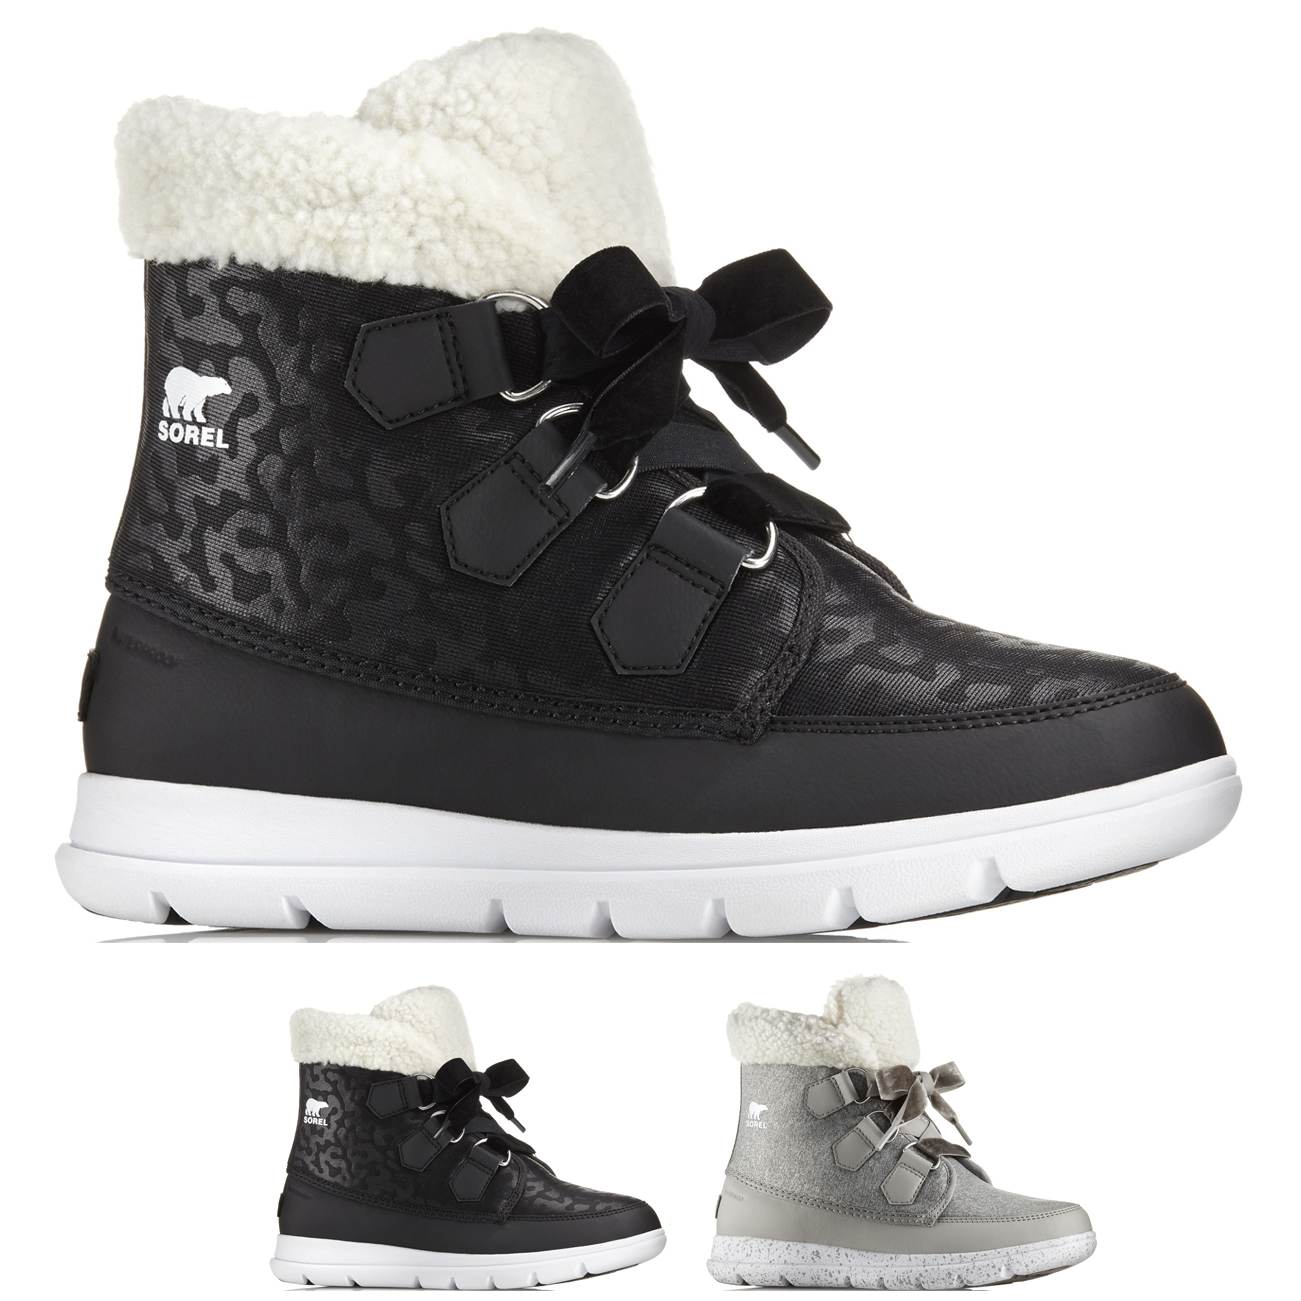 Womens Sorel Explorer Carnival Waterproof Nylon Winter Fleece Ankle Boots UK 3-9